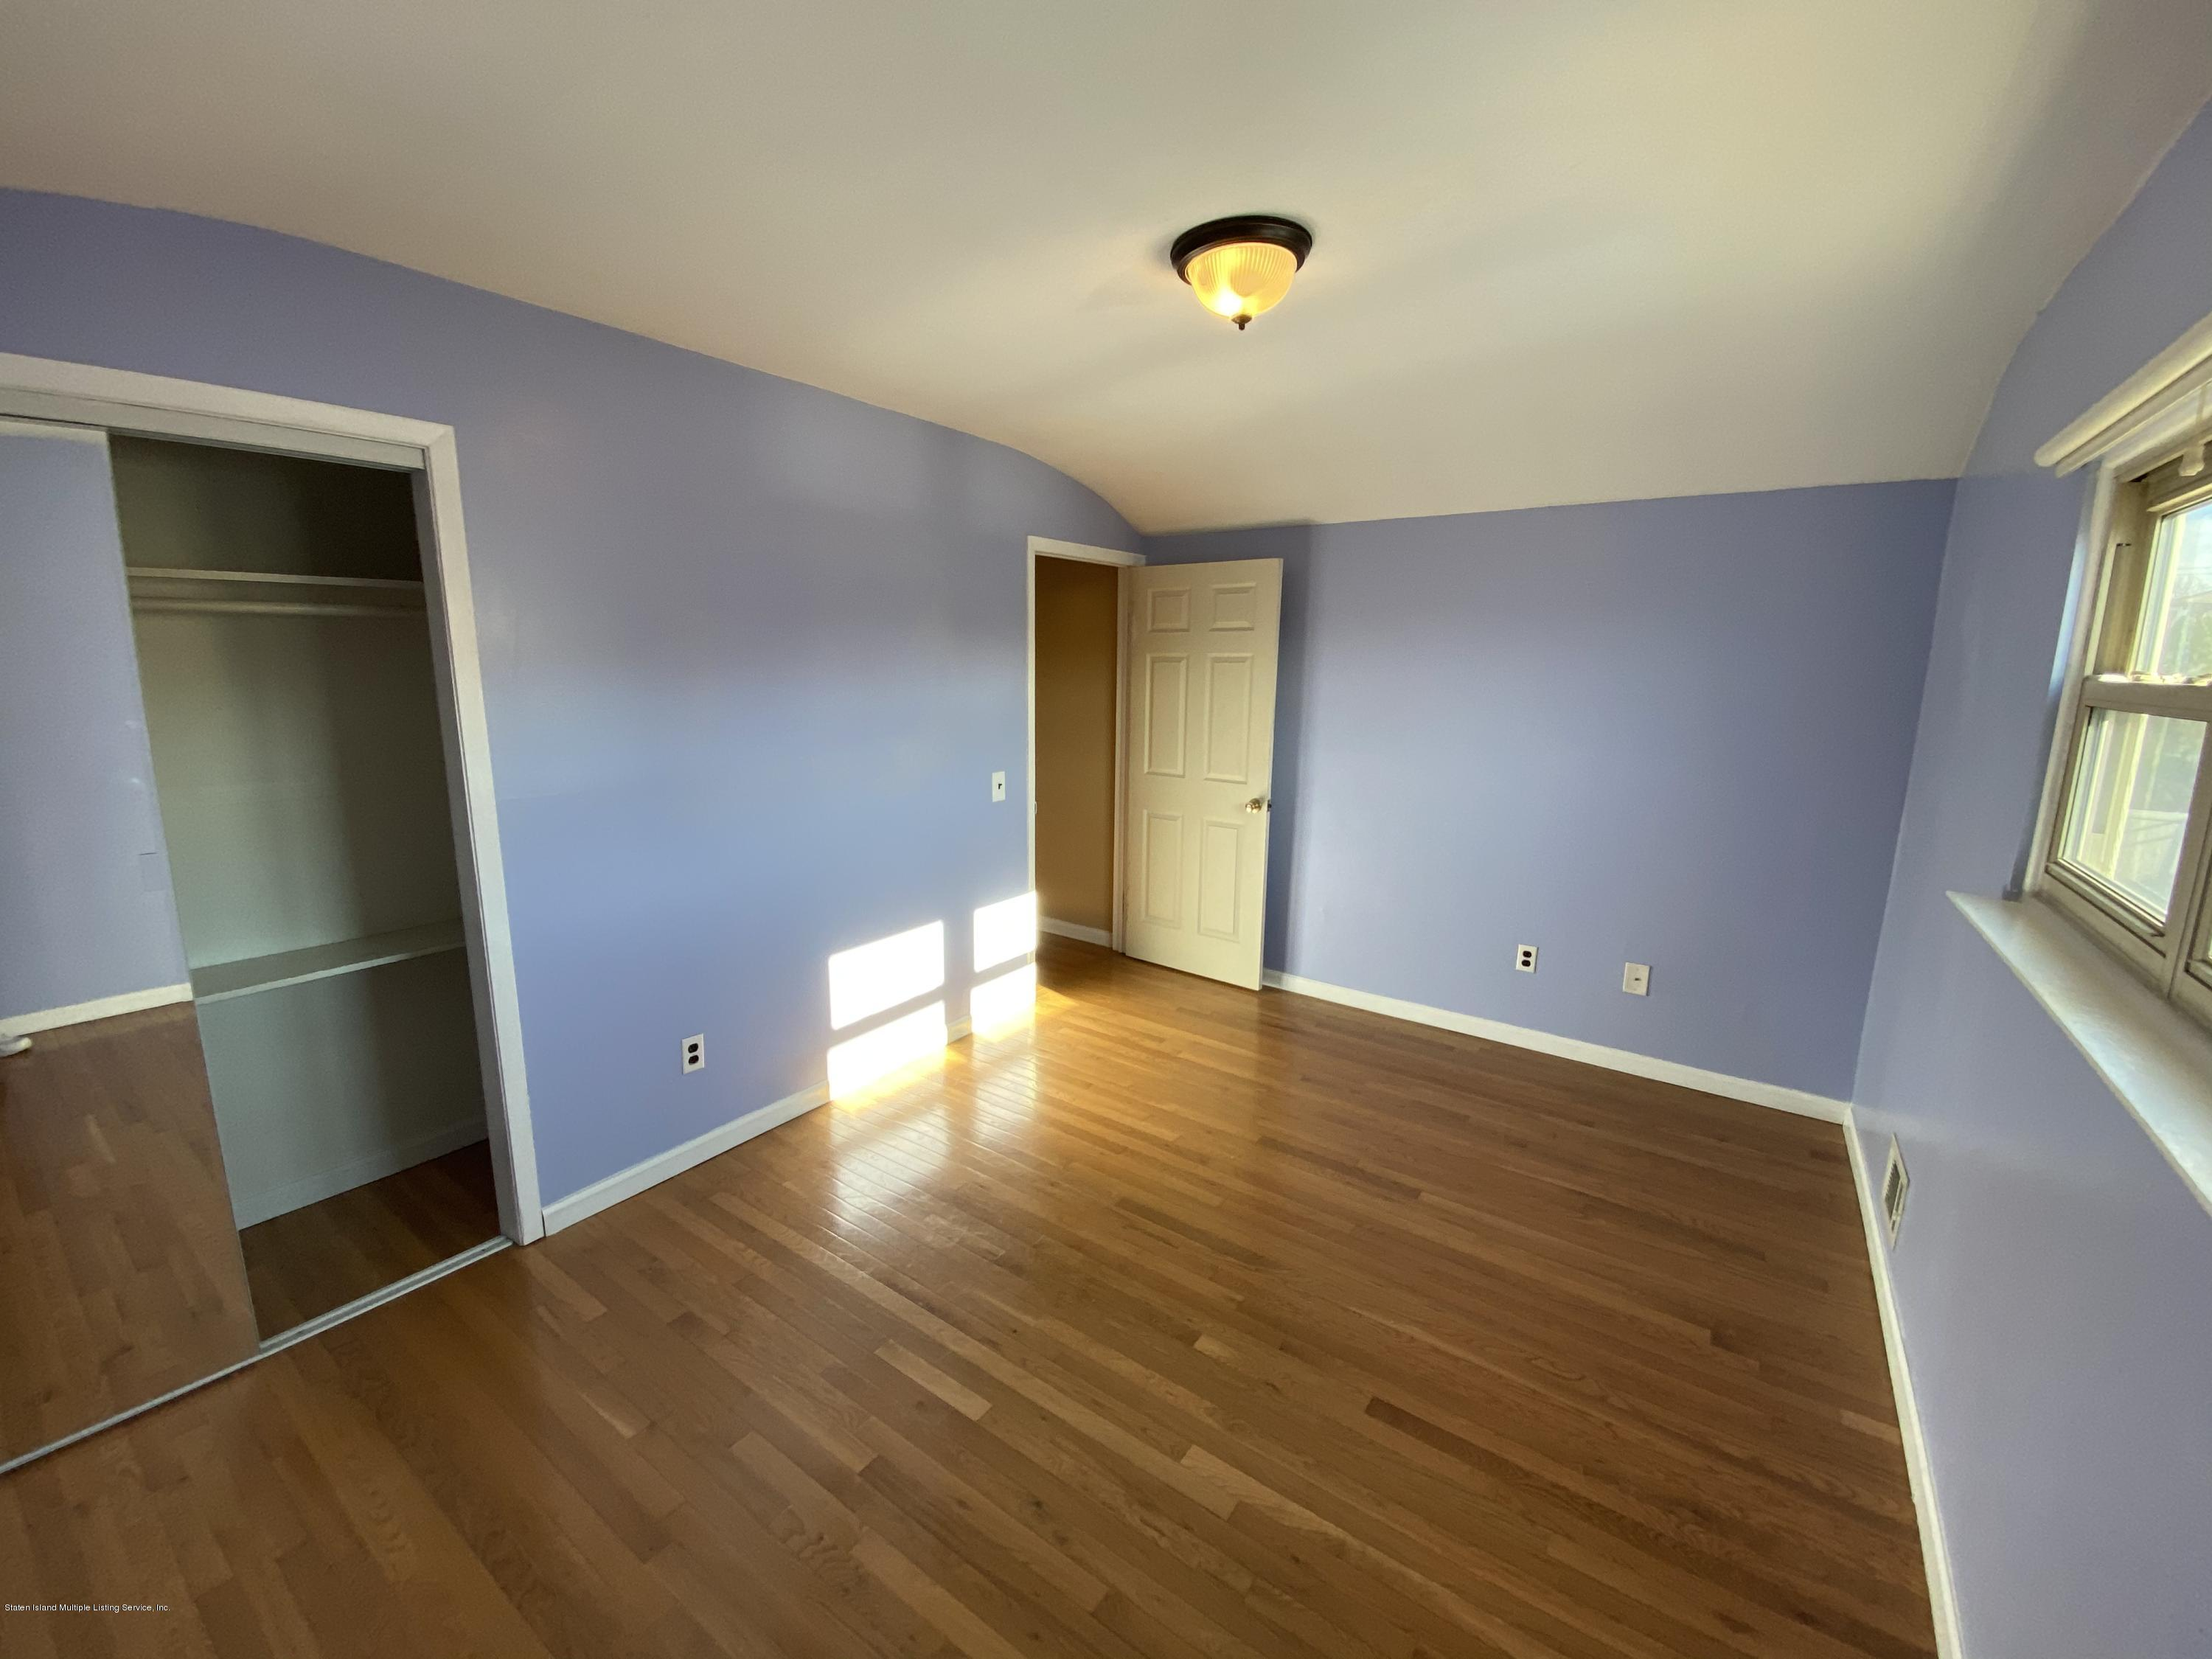 Single Family - Attached 118 Braisted Avenue  Staten Island, NY 10314, MLS-1135869-11